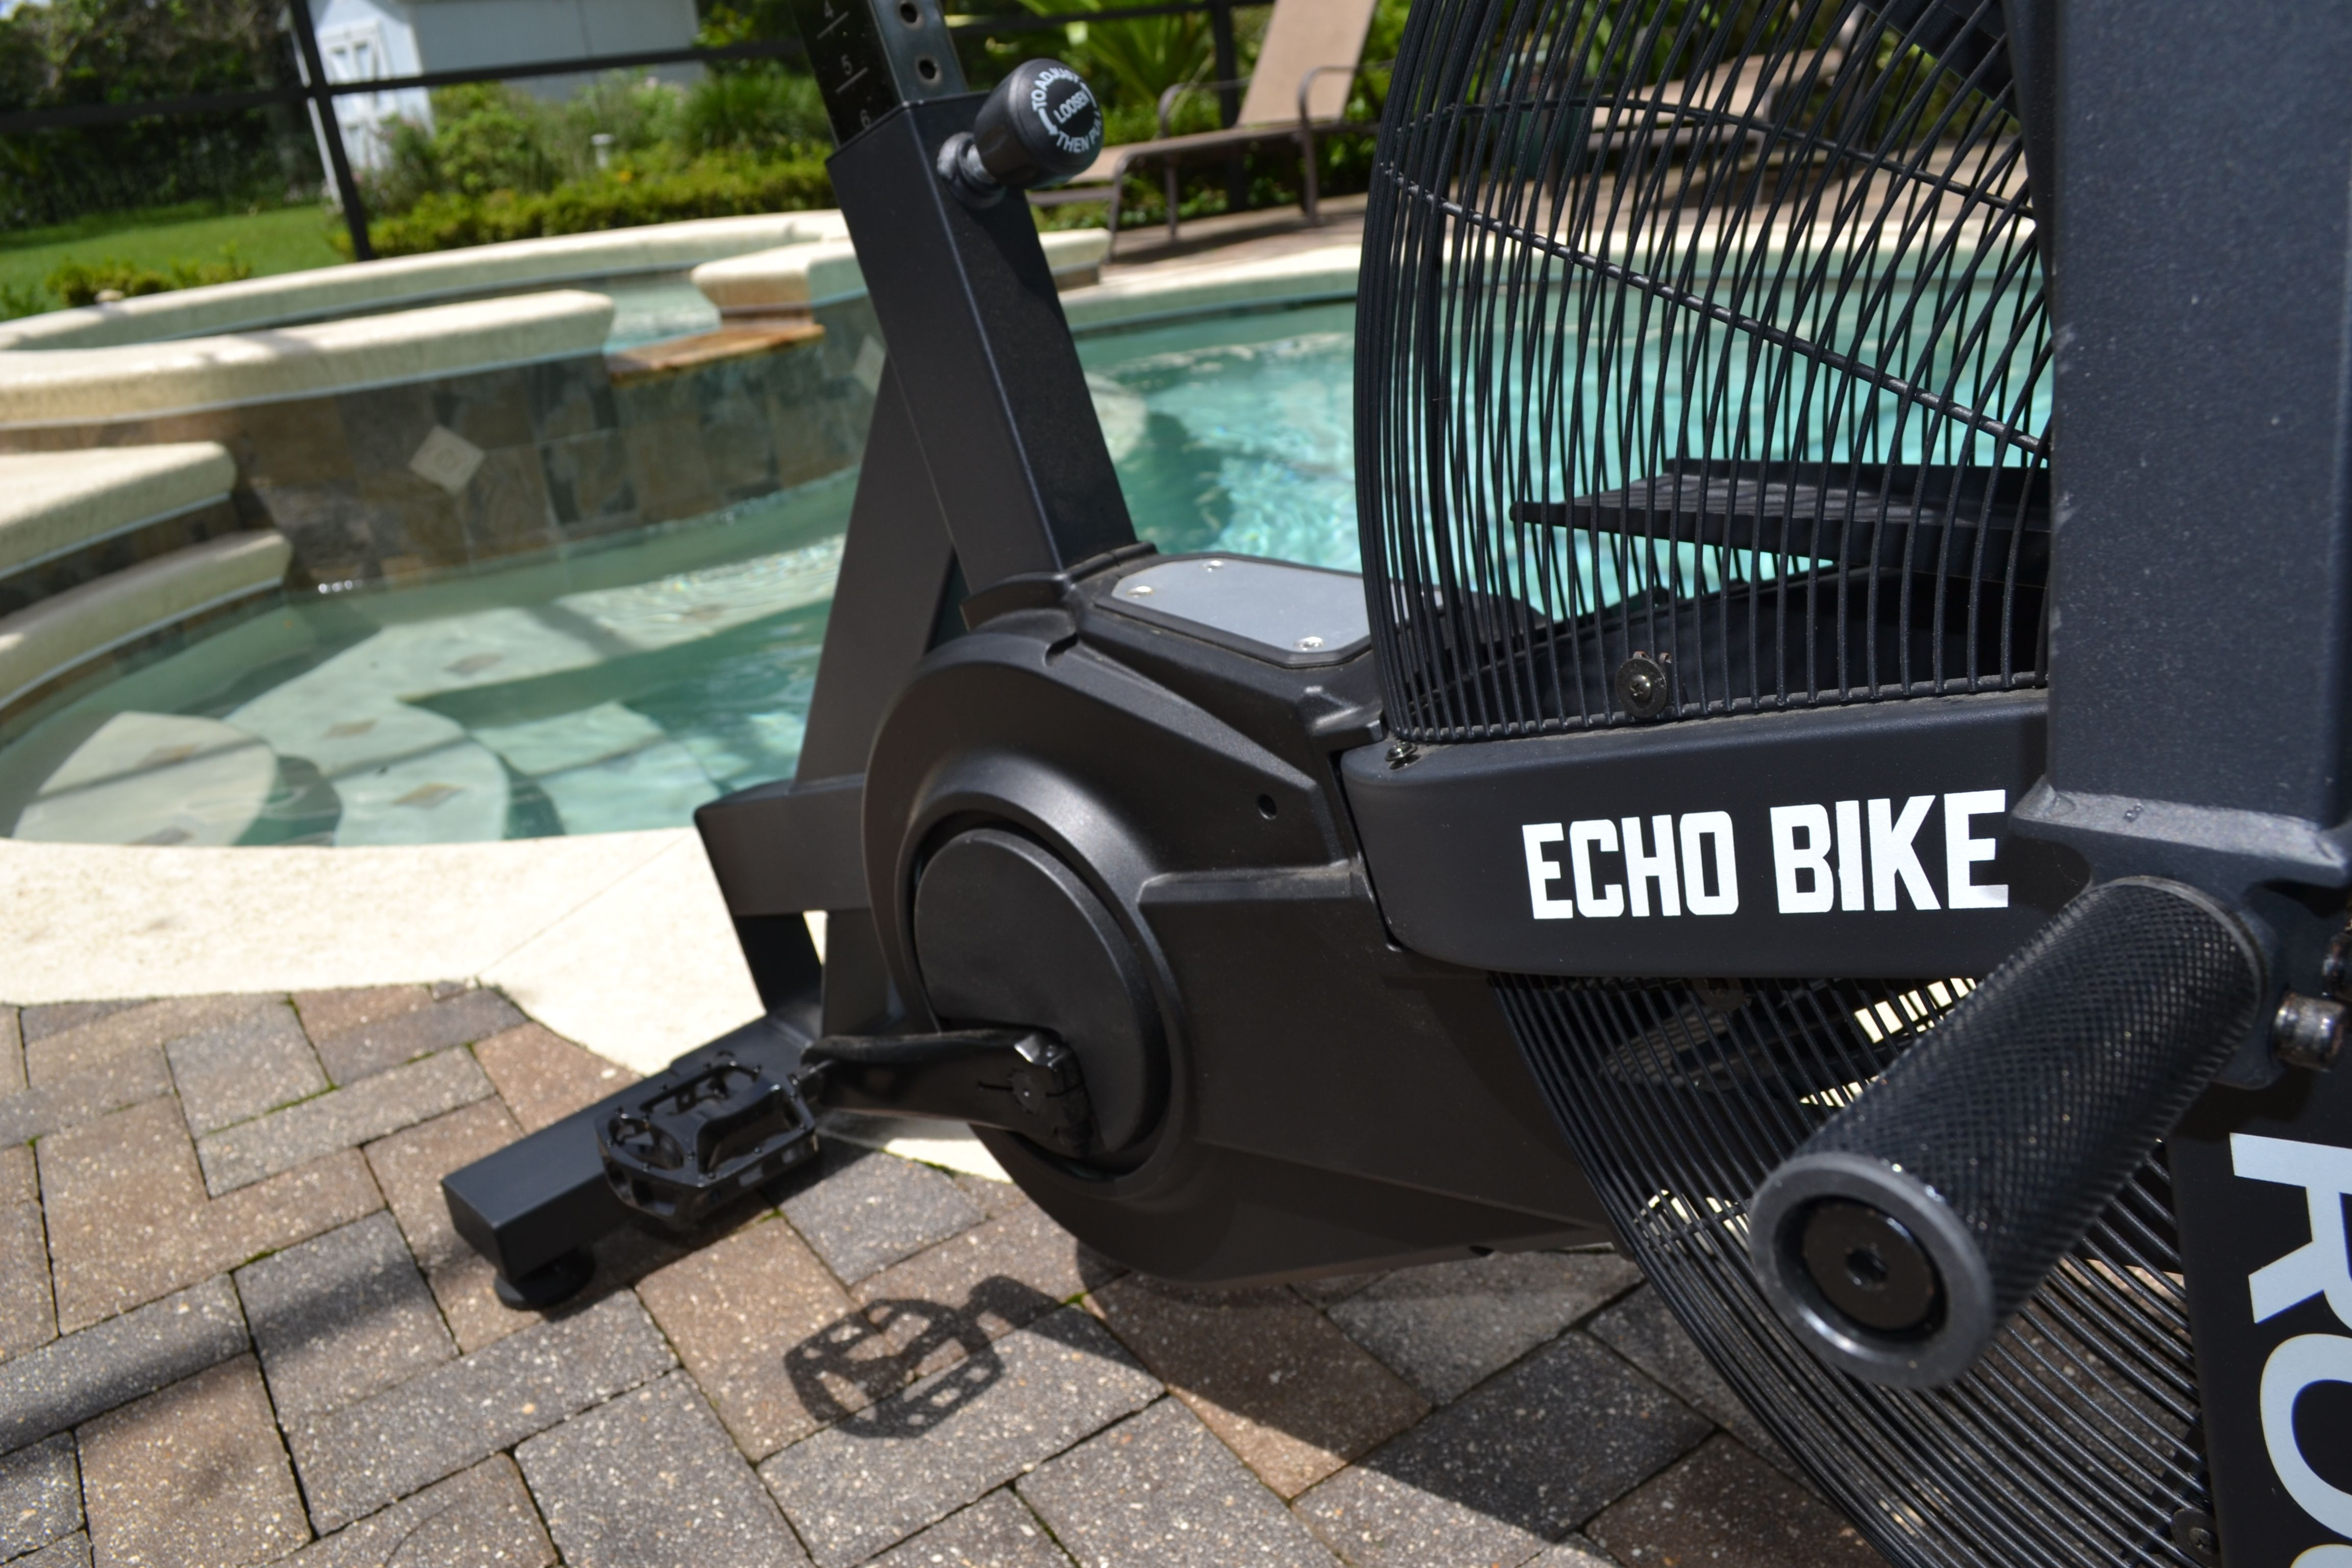 Pin By Fit At Midlife On Rogue Echo Bike Bike Reviews Hard